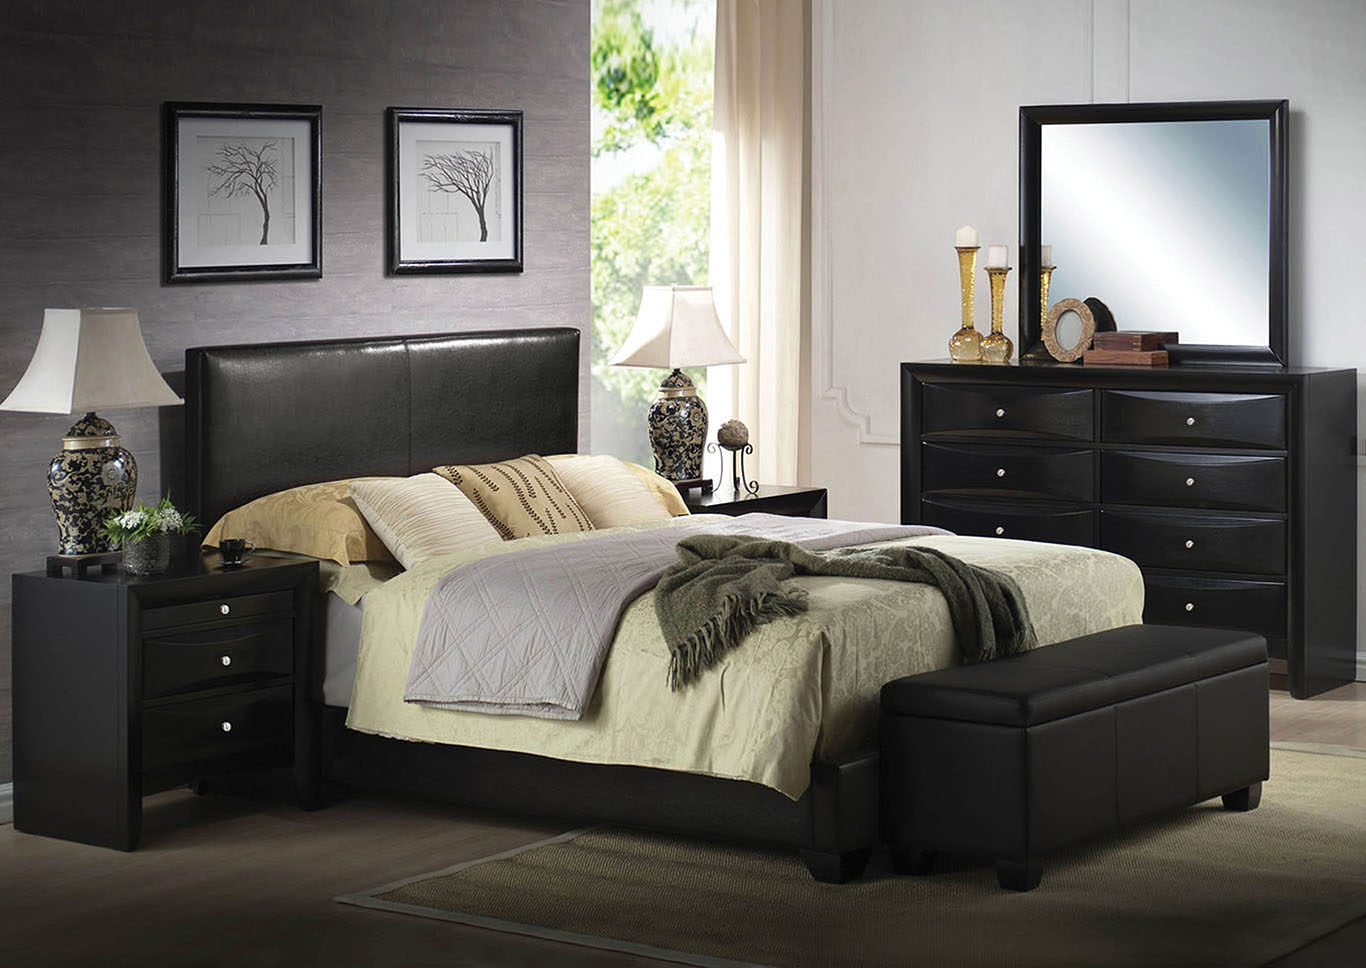 Ireland III Black Eastern King Platform Bed w/Dresser and Mirror,Acme